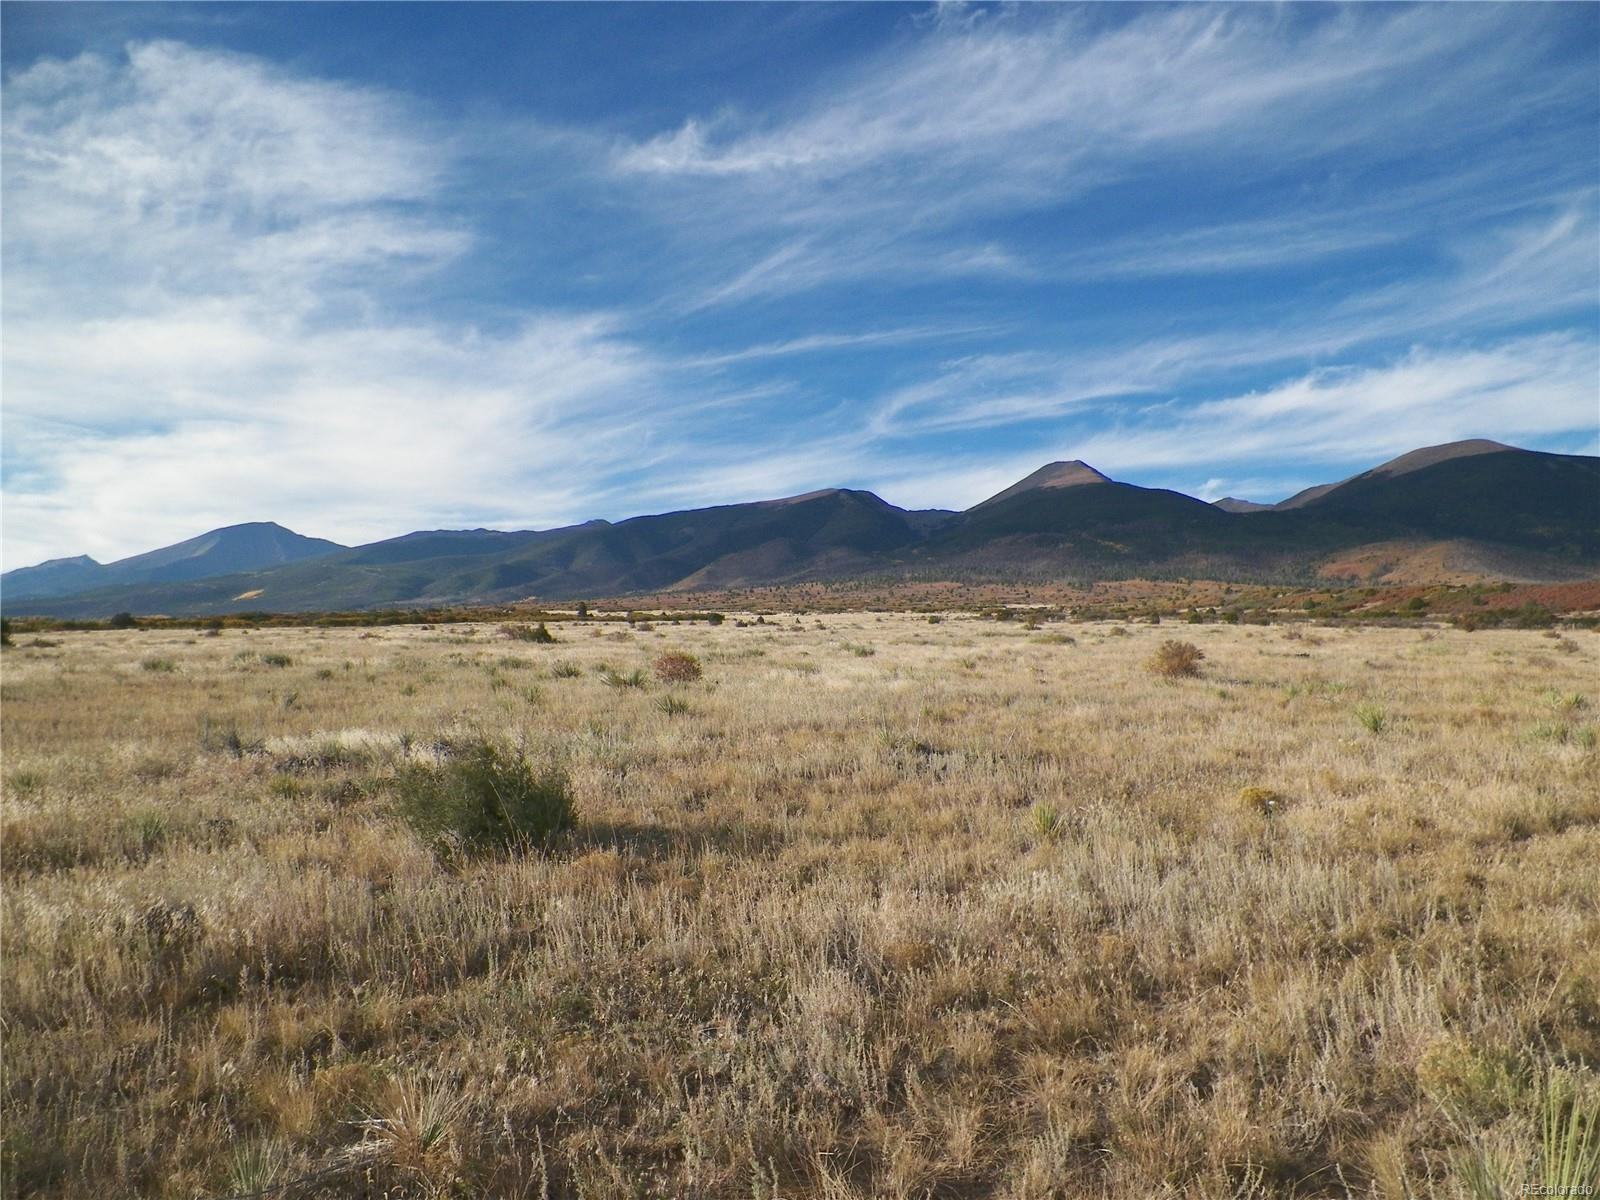 798 RUNNING BEAR, Cotopaxi, CO 81223 - Cotopaxi, CO real estate listing